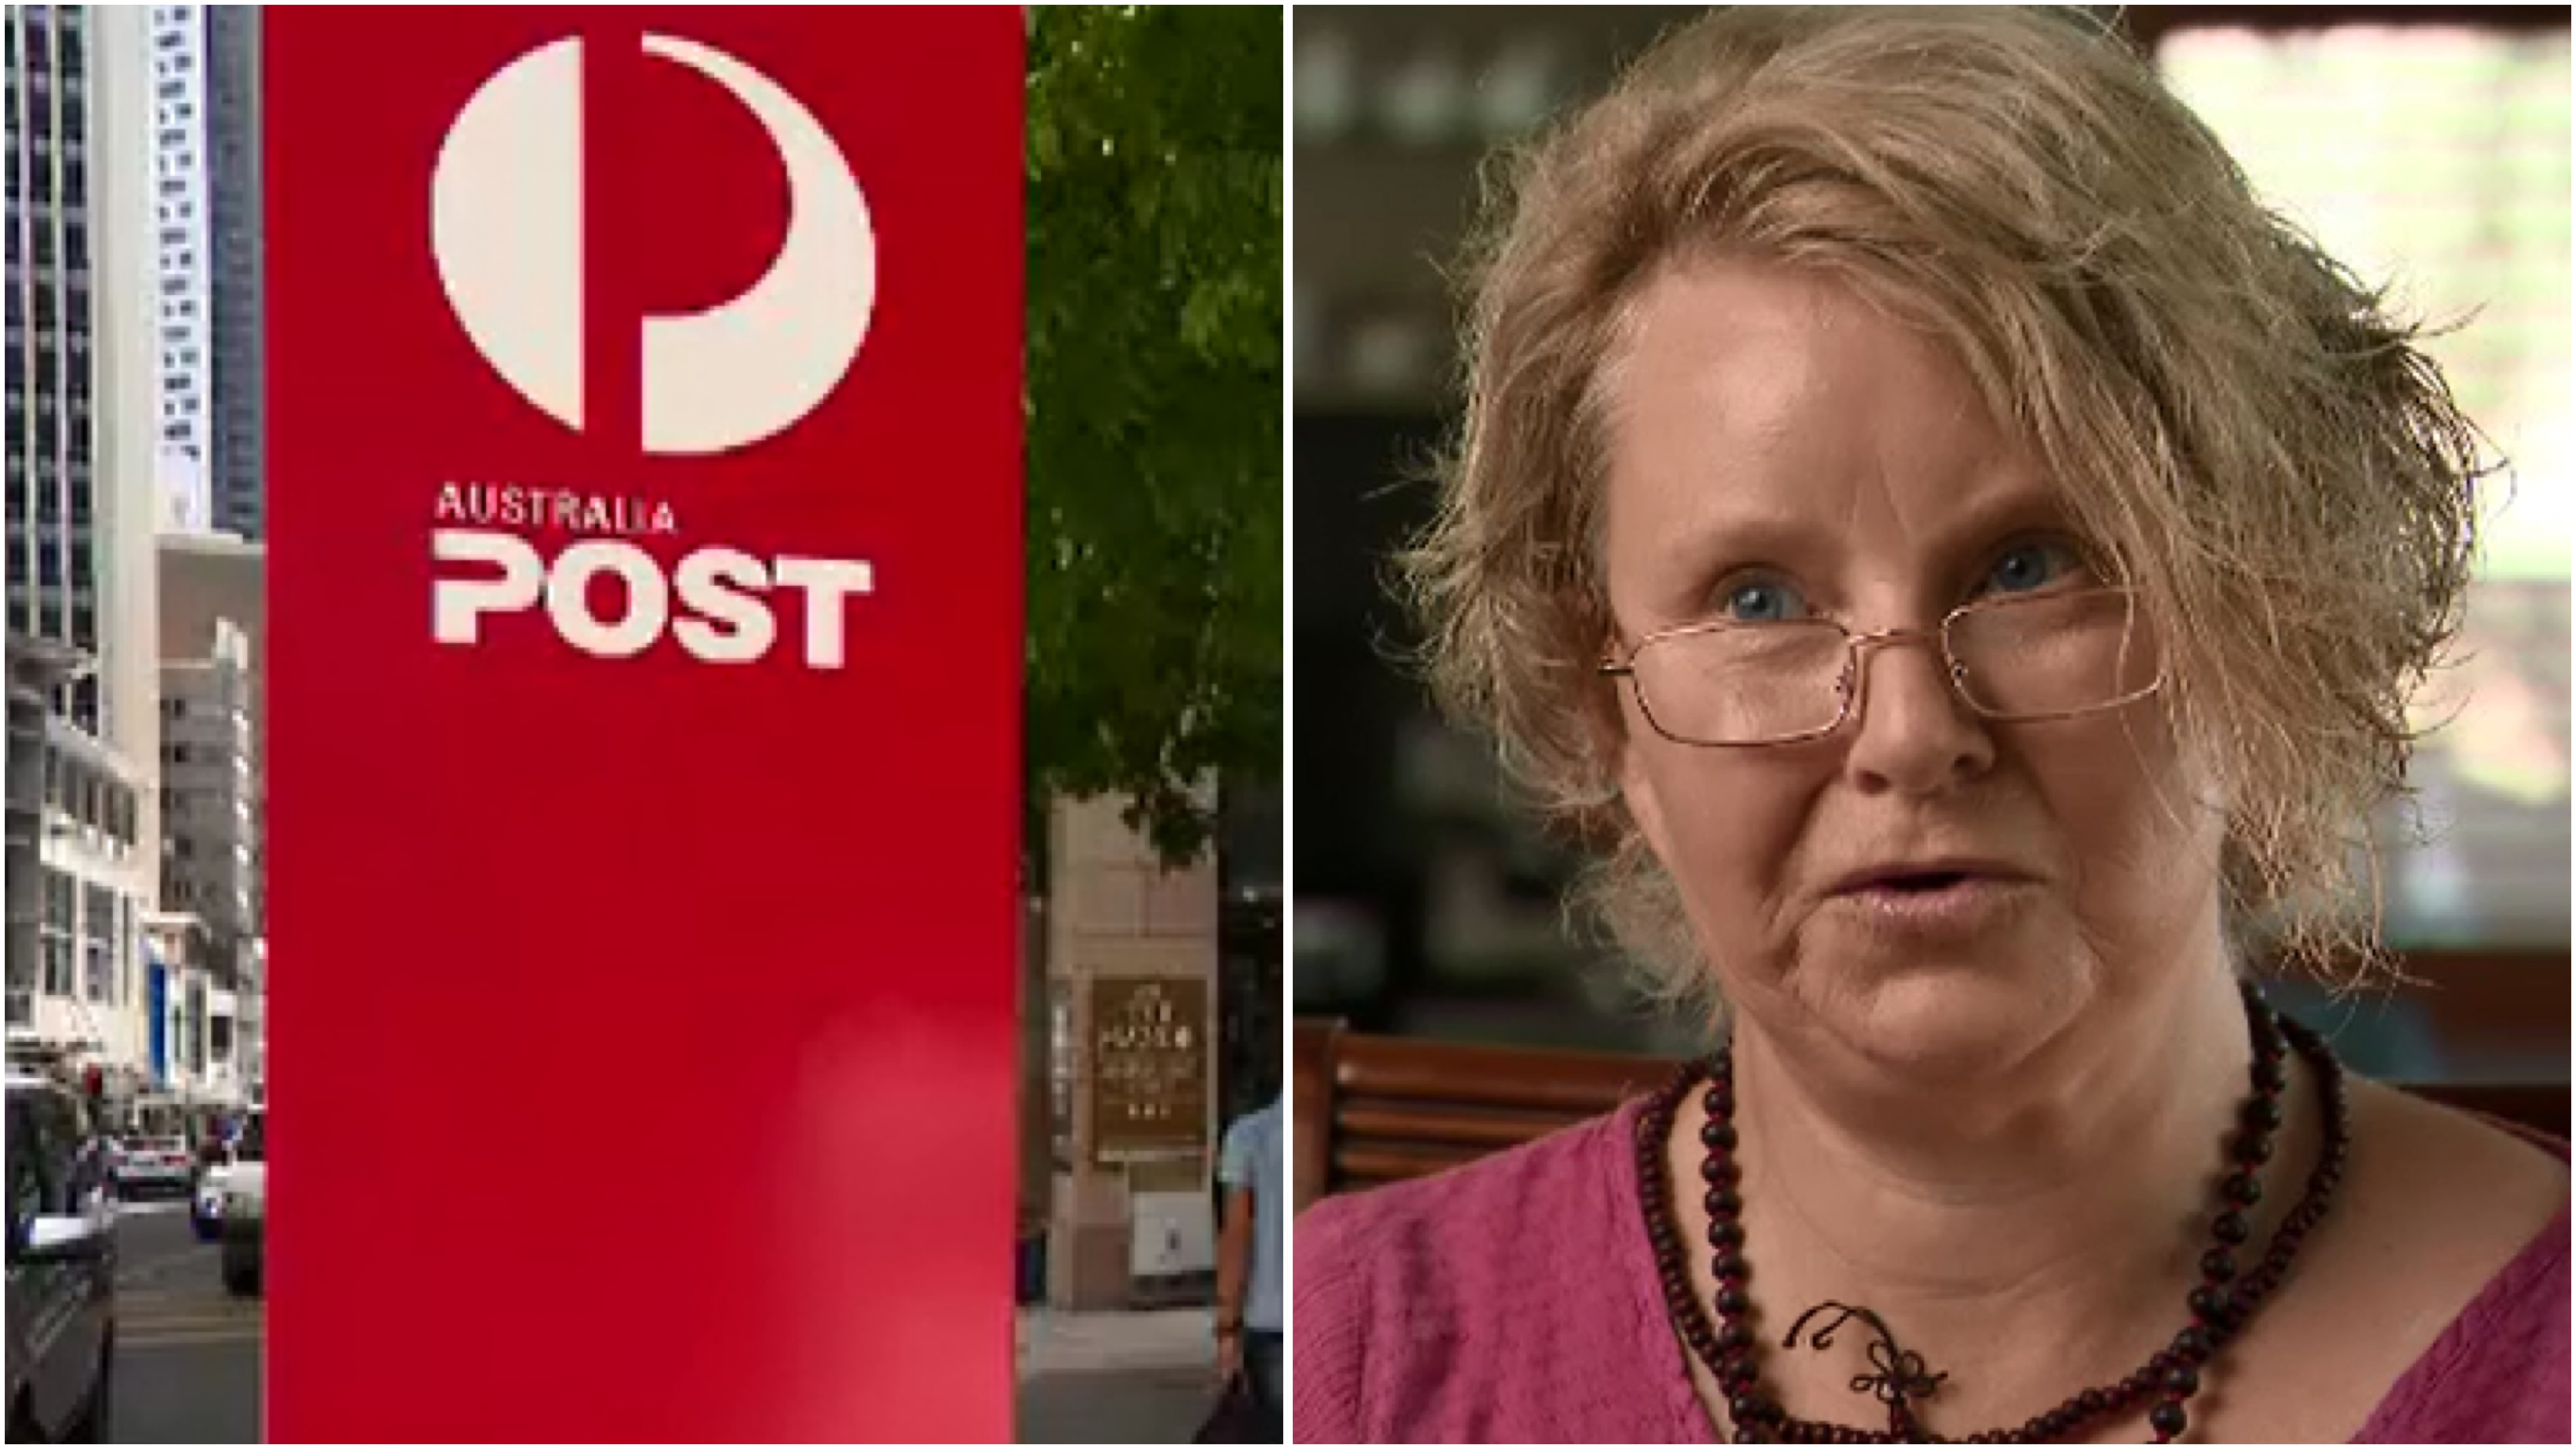 Australia Post blunder: 'You don't get any compensation'